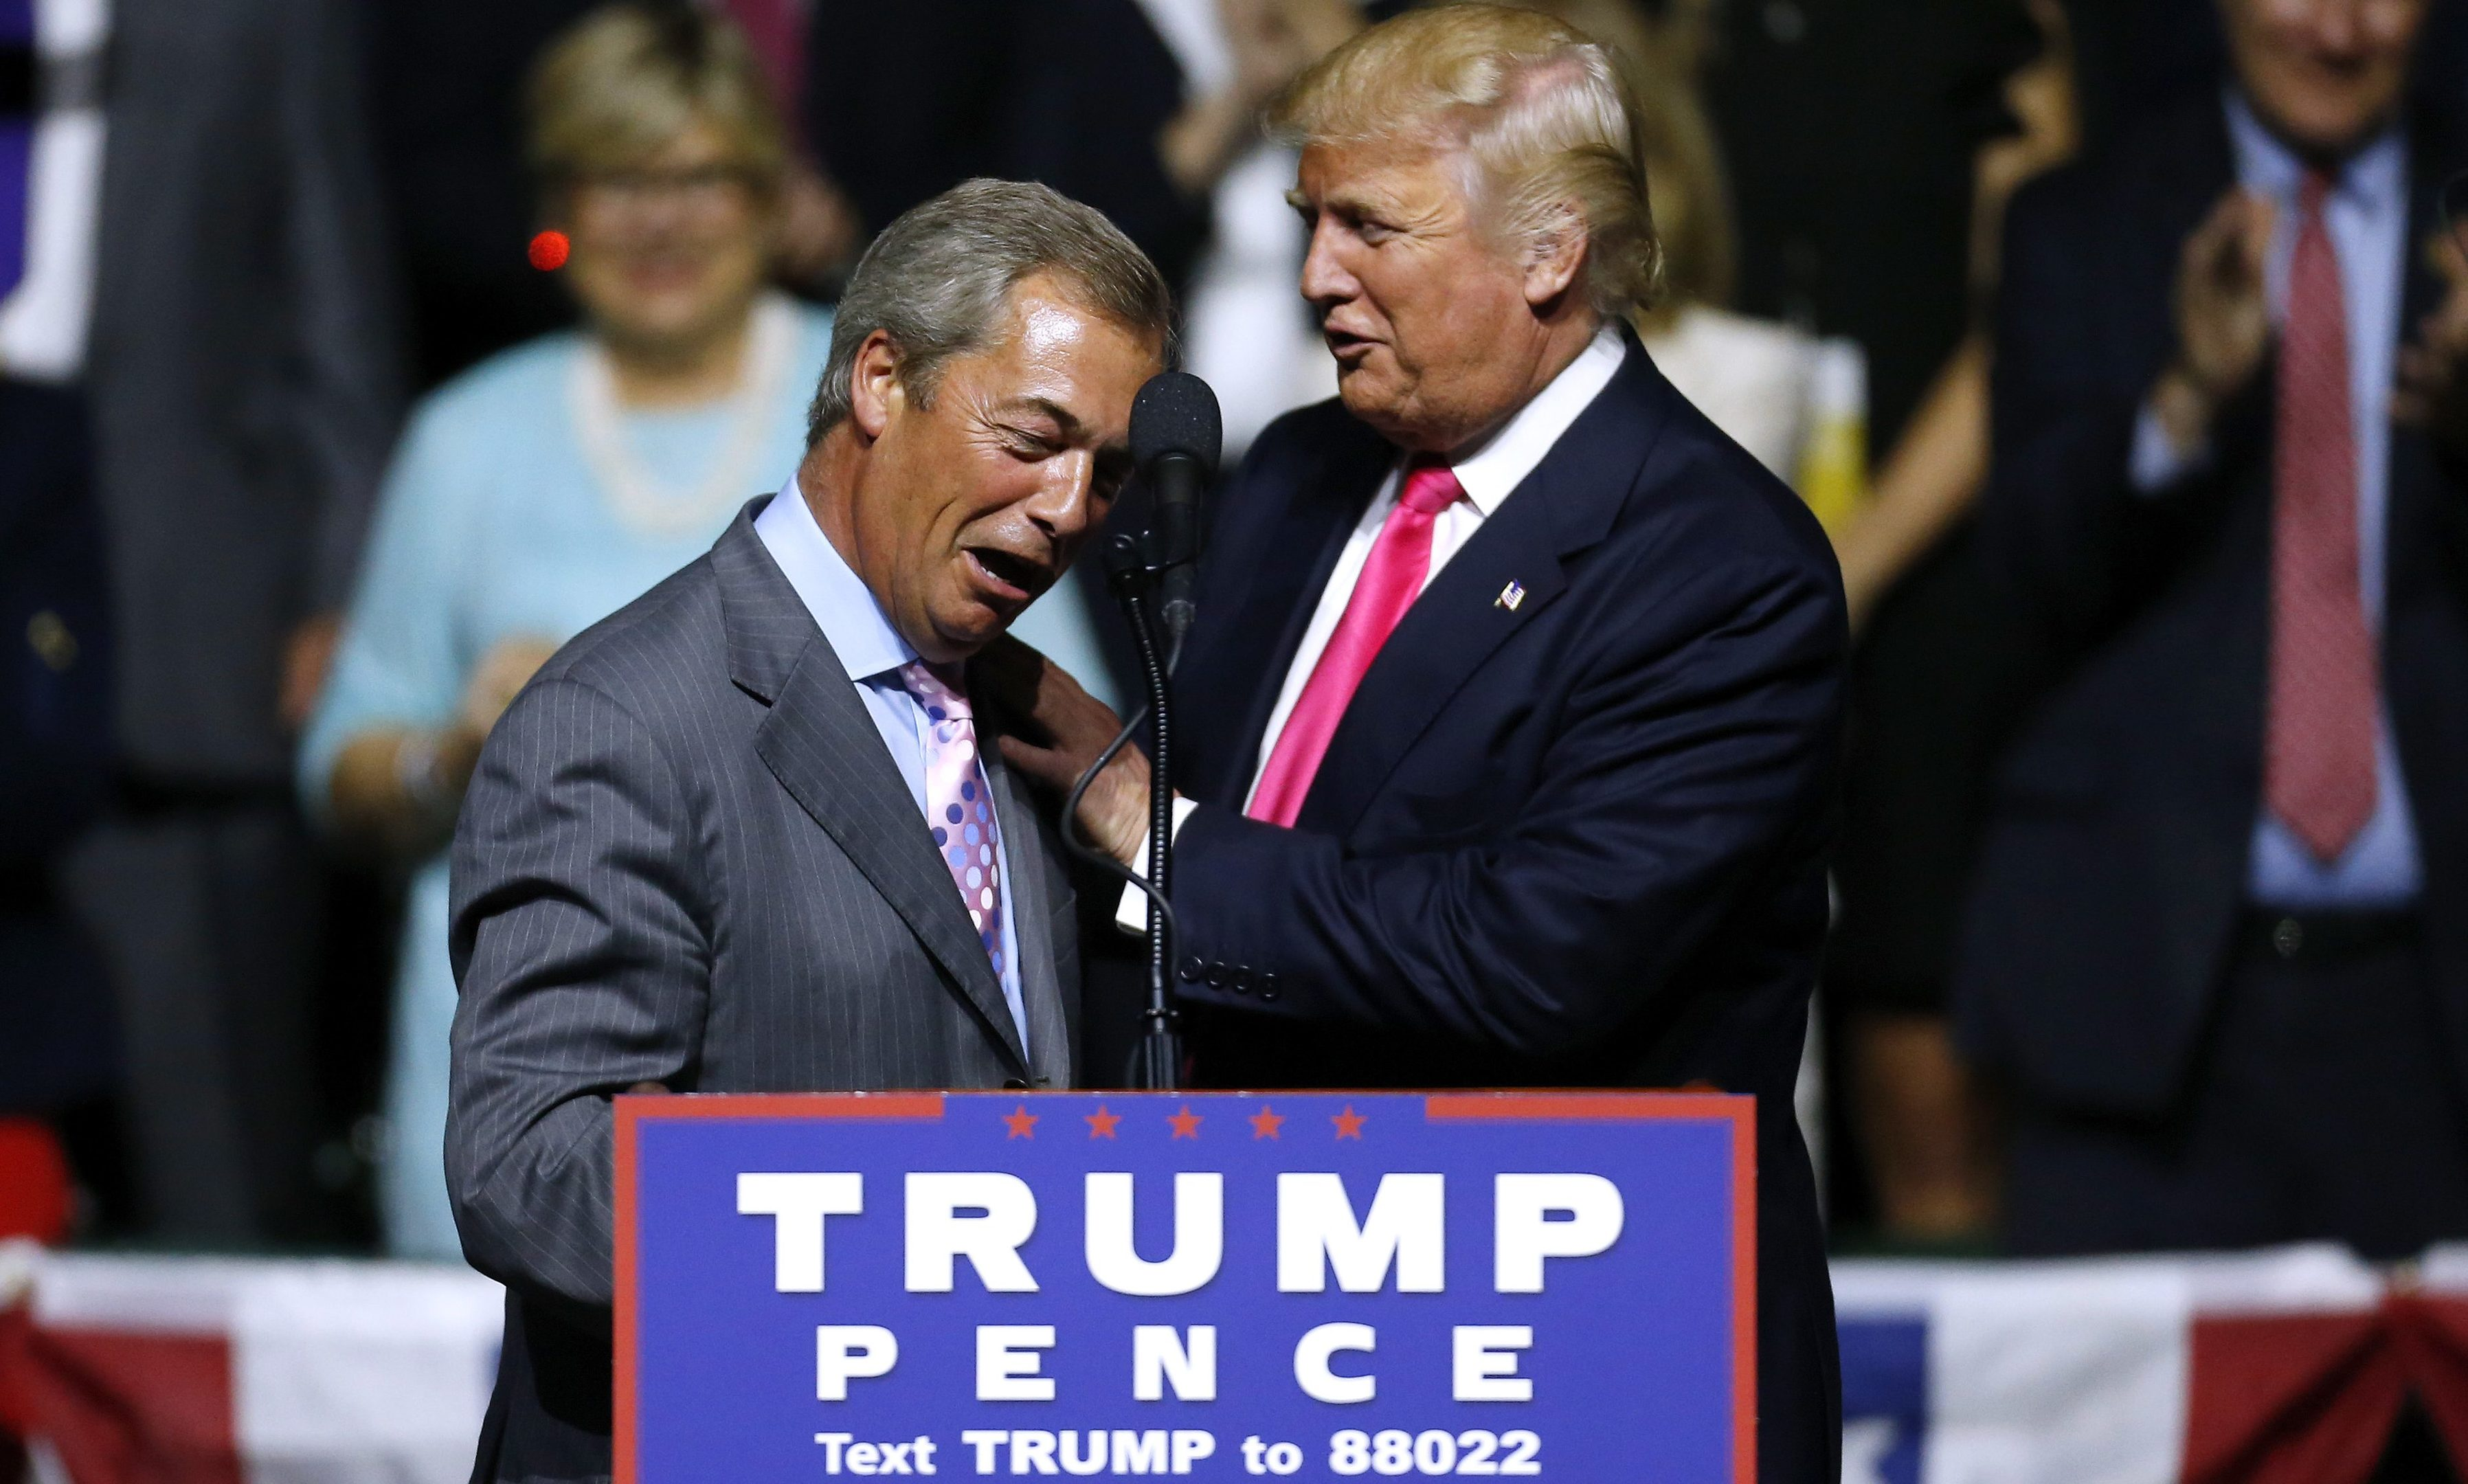 Nigel Farage spoke at a Donald Trump rally during campaigning.